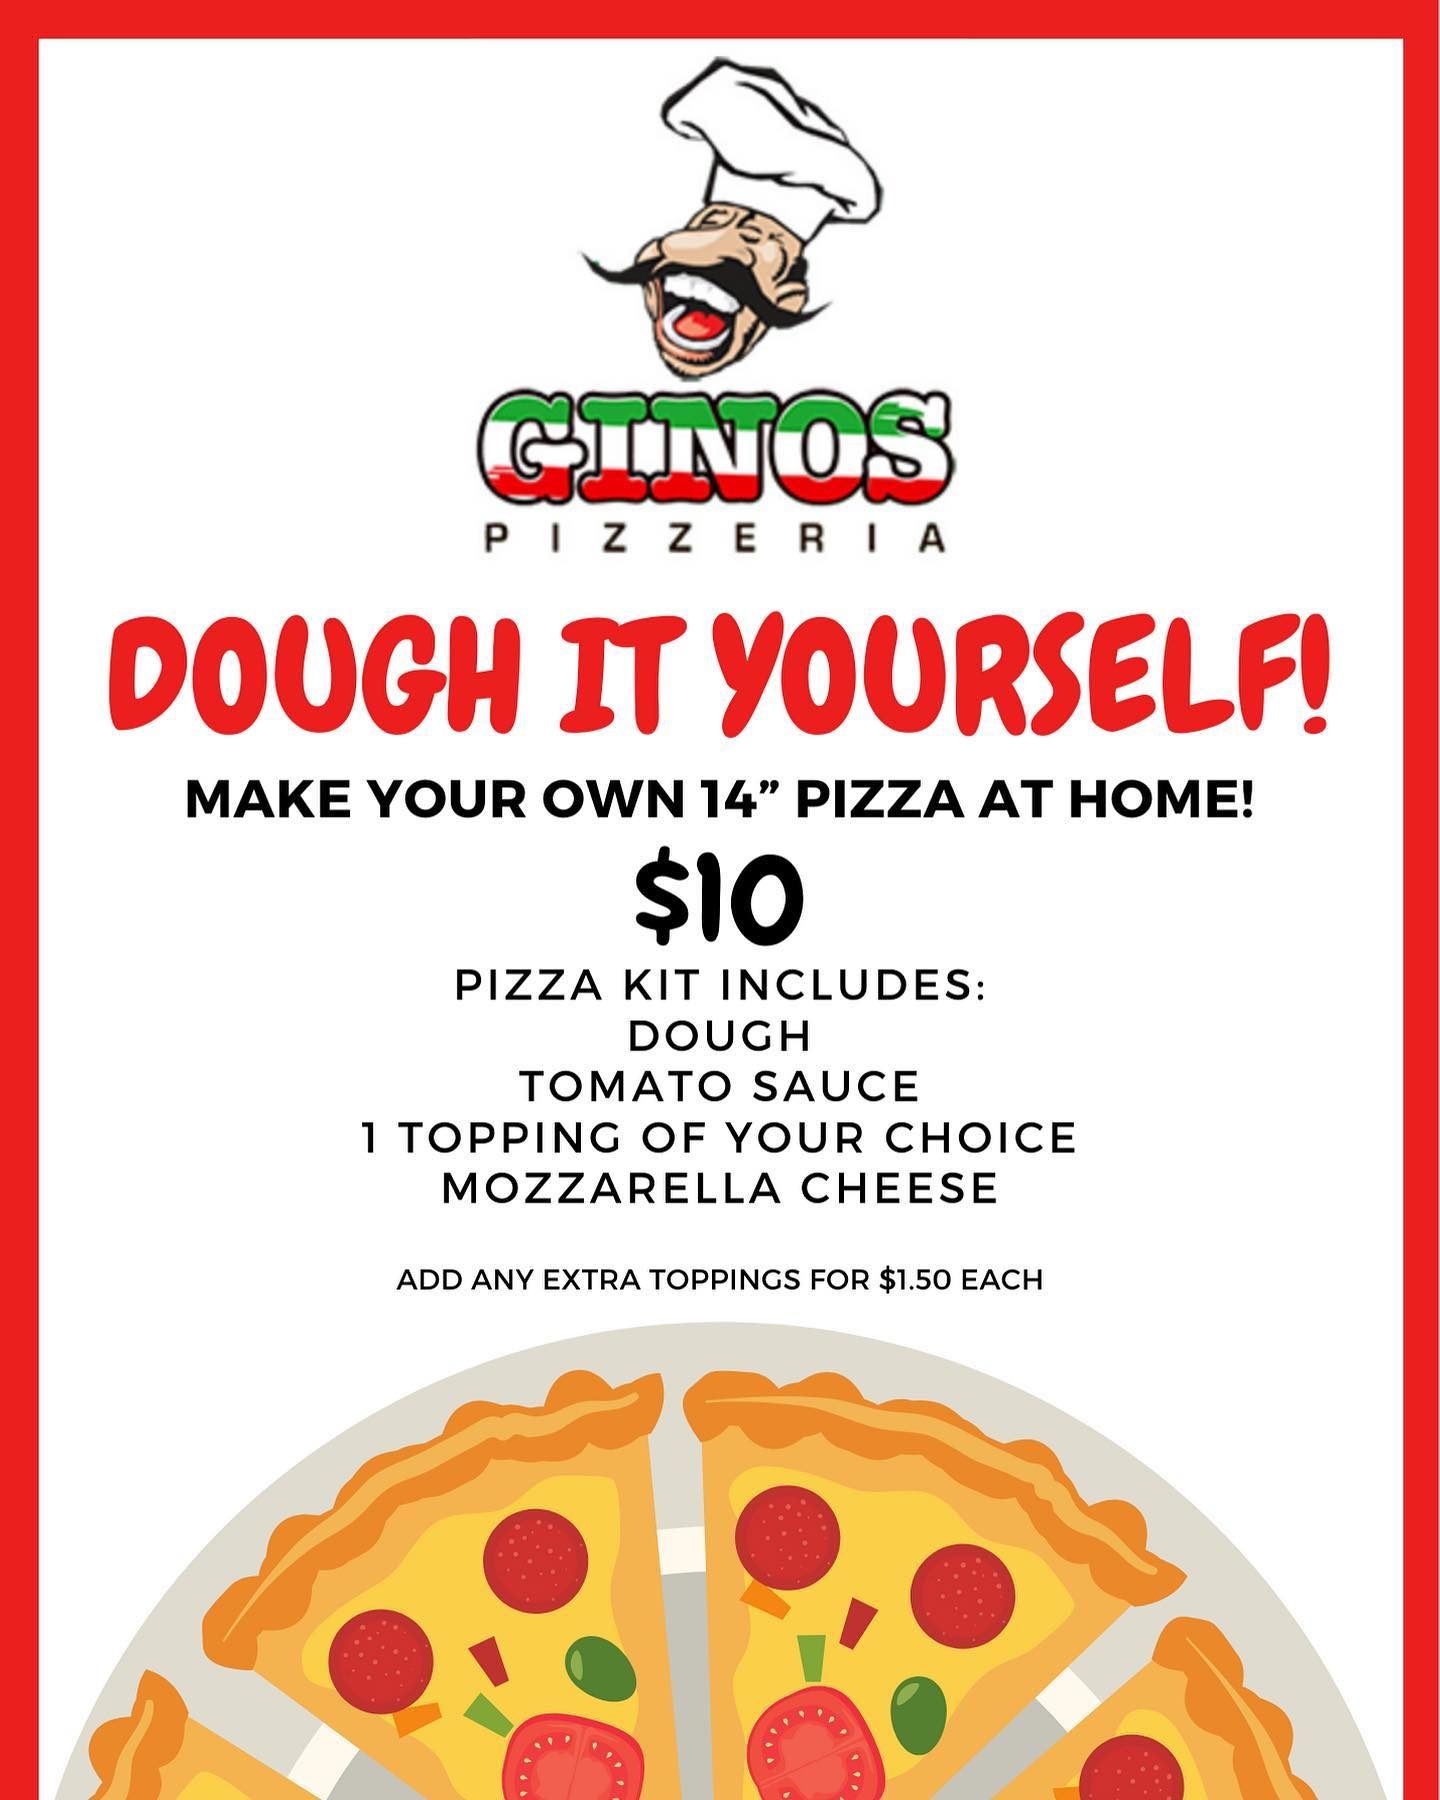 Dough it Yourself! Make your own Pizza at Home for $10